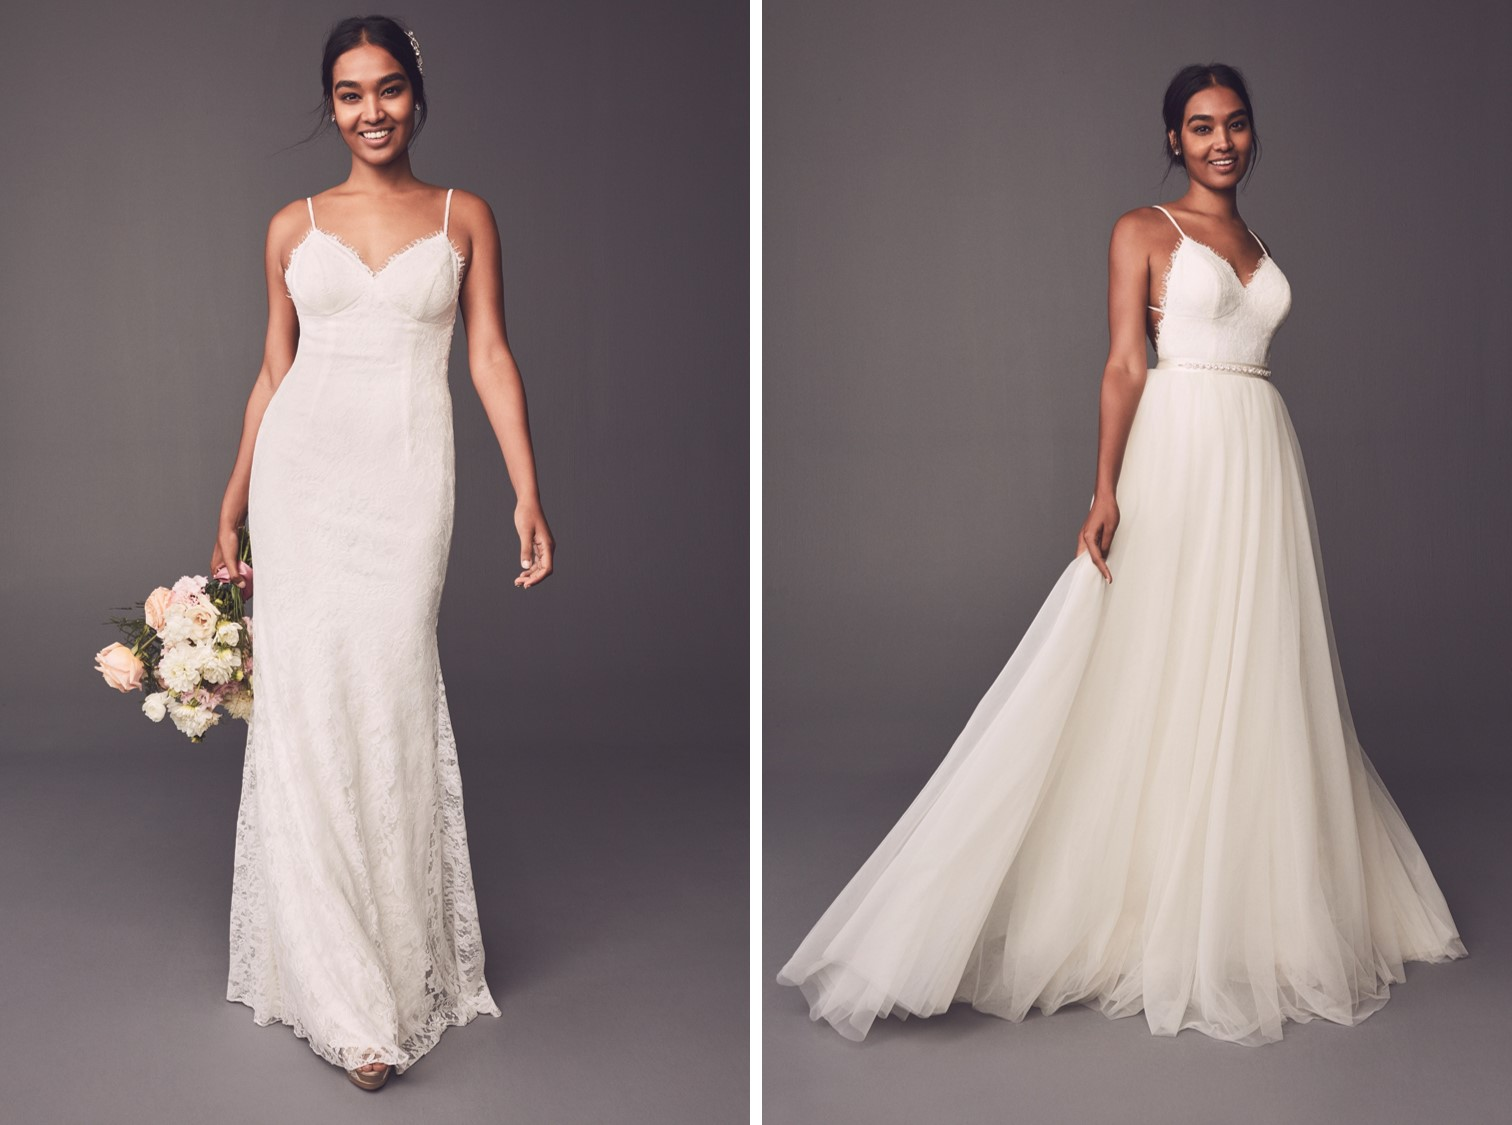 Twice As Nice Convertible Styles David S Bridal Blog